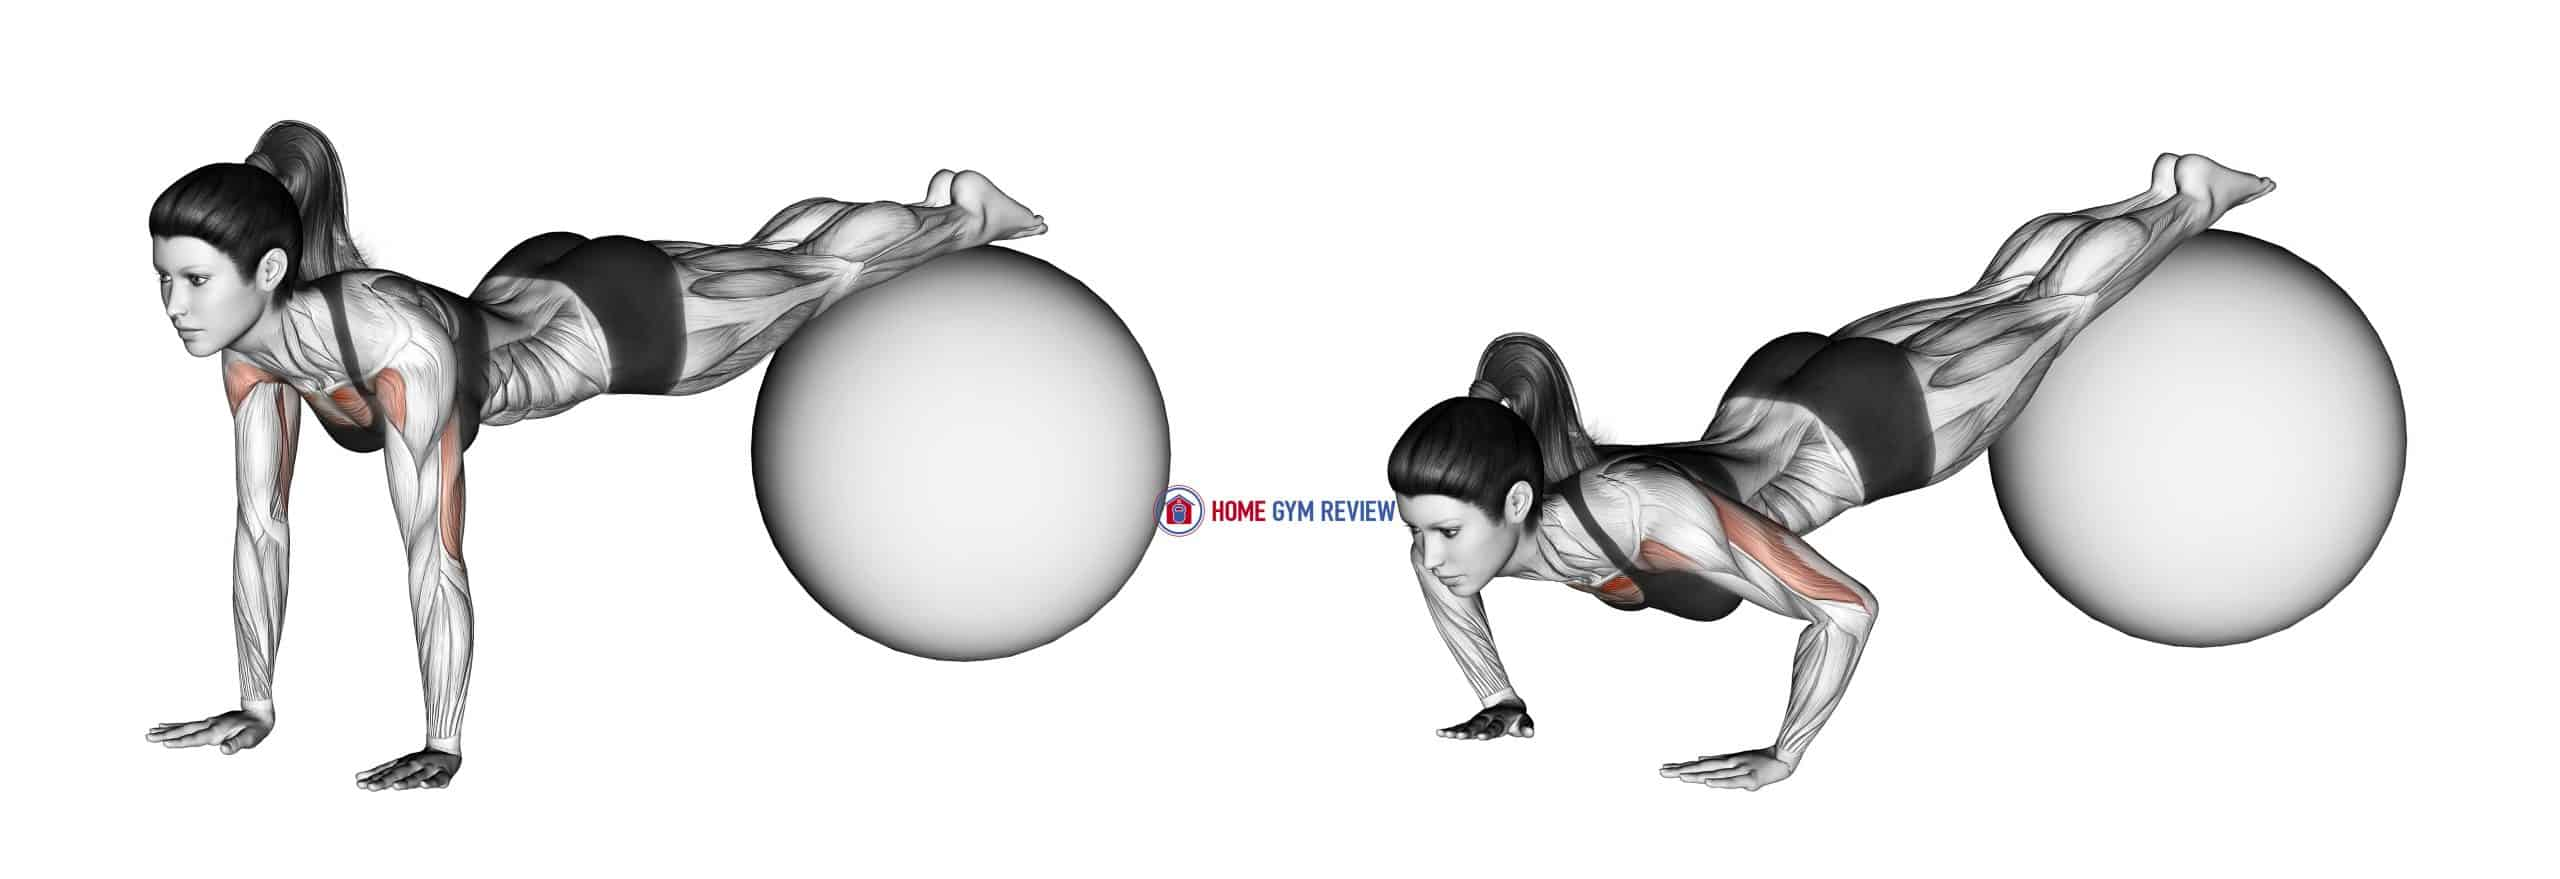 Decline Push-up (on stability ball)